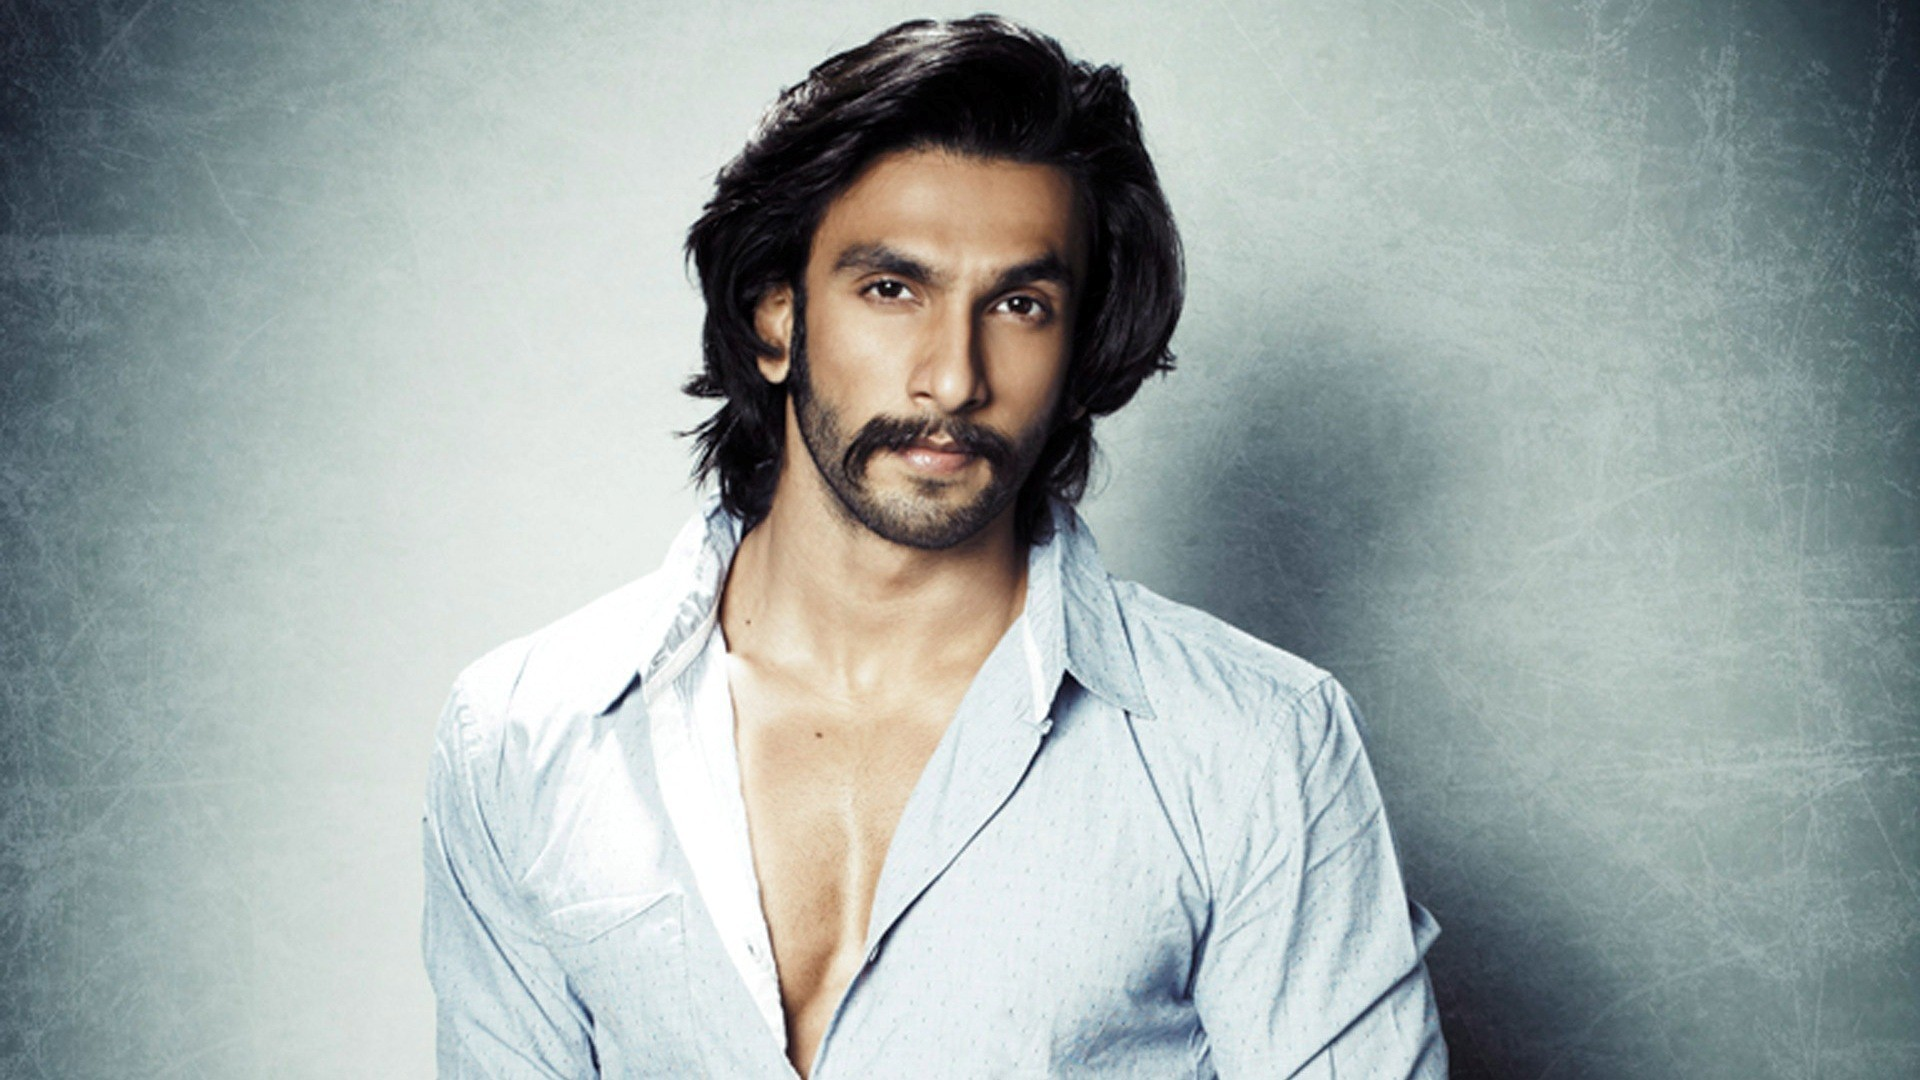 Ranveer Singh Wallpapers Images Photos Pictures Backgrounds